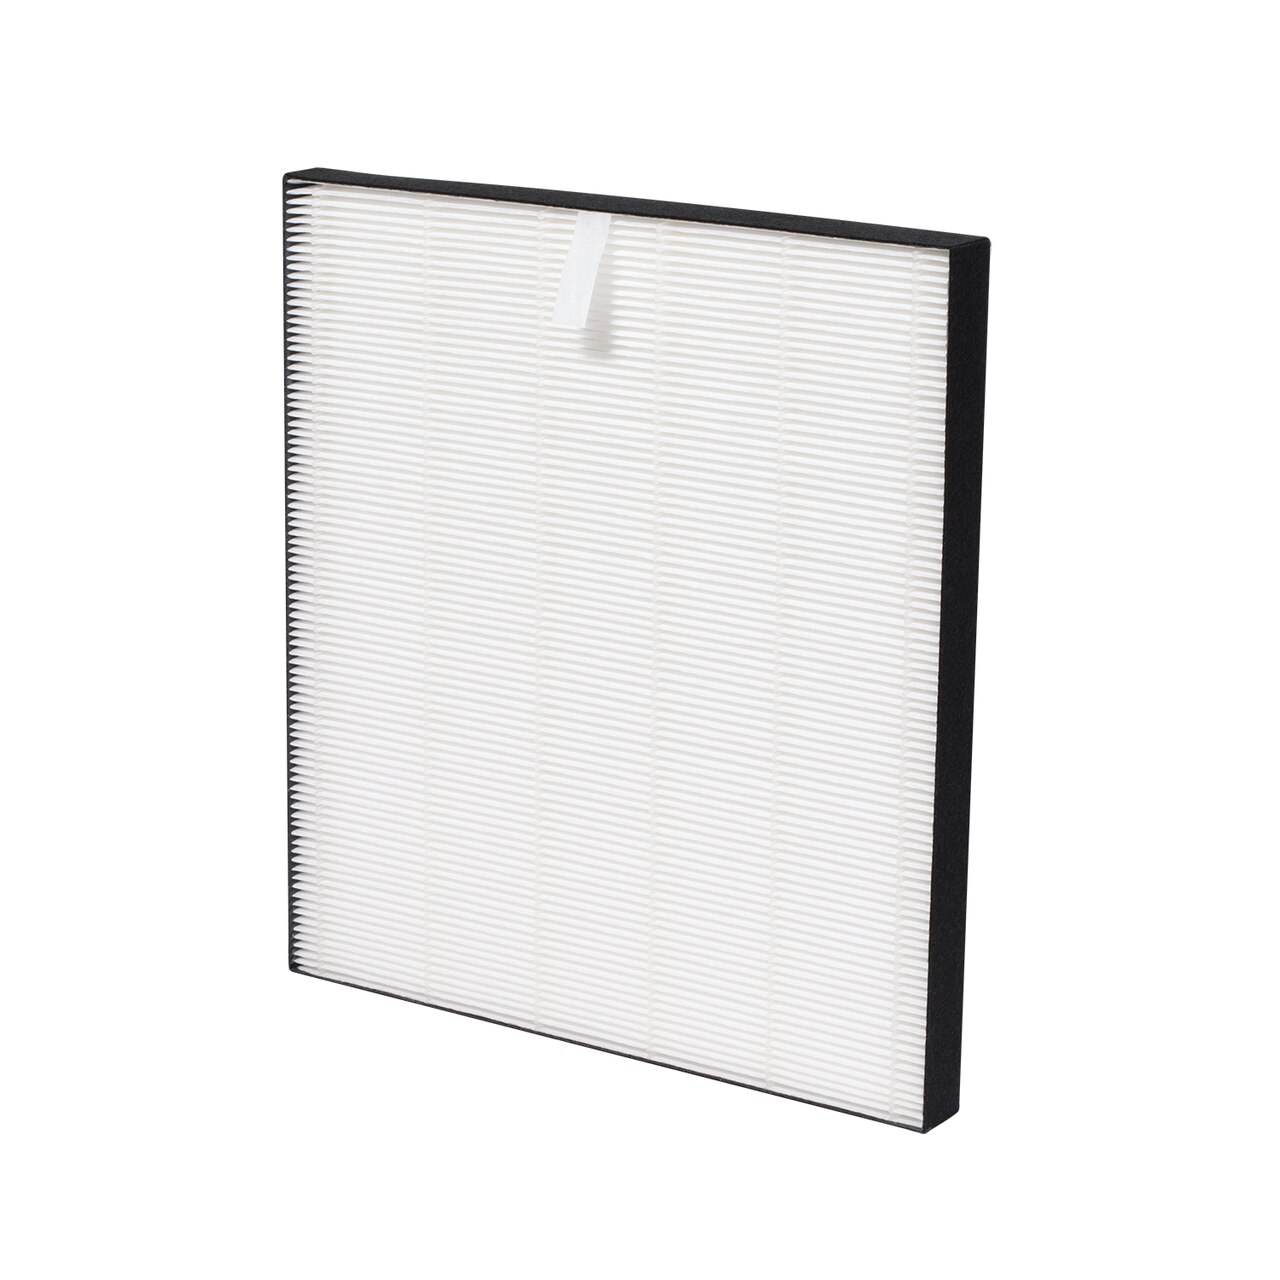 FZF30HFU True HEPA Replacement Filter- right angle view